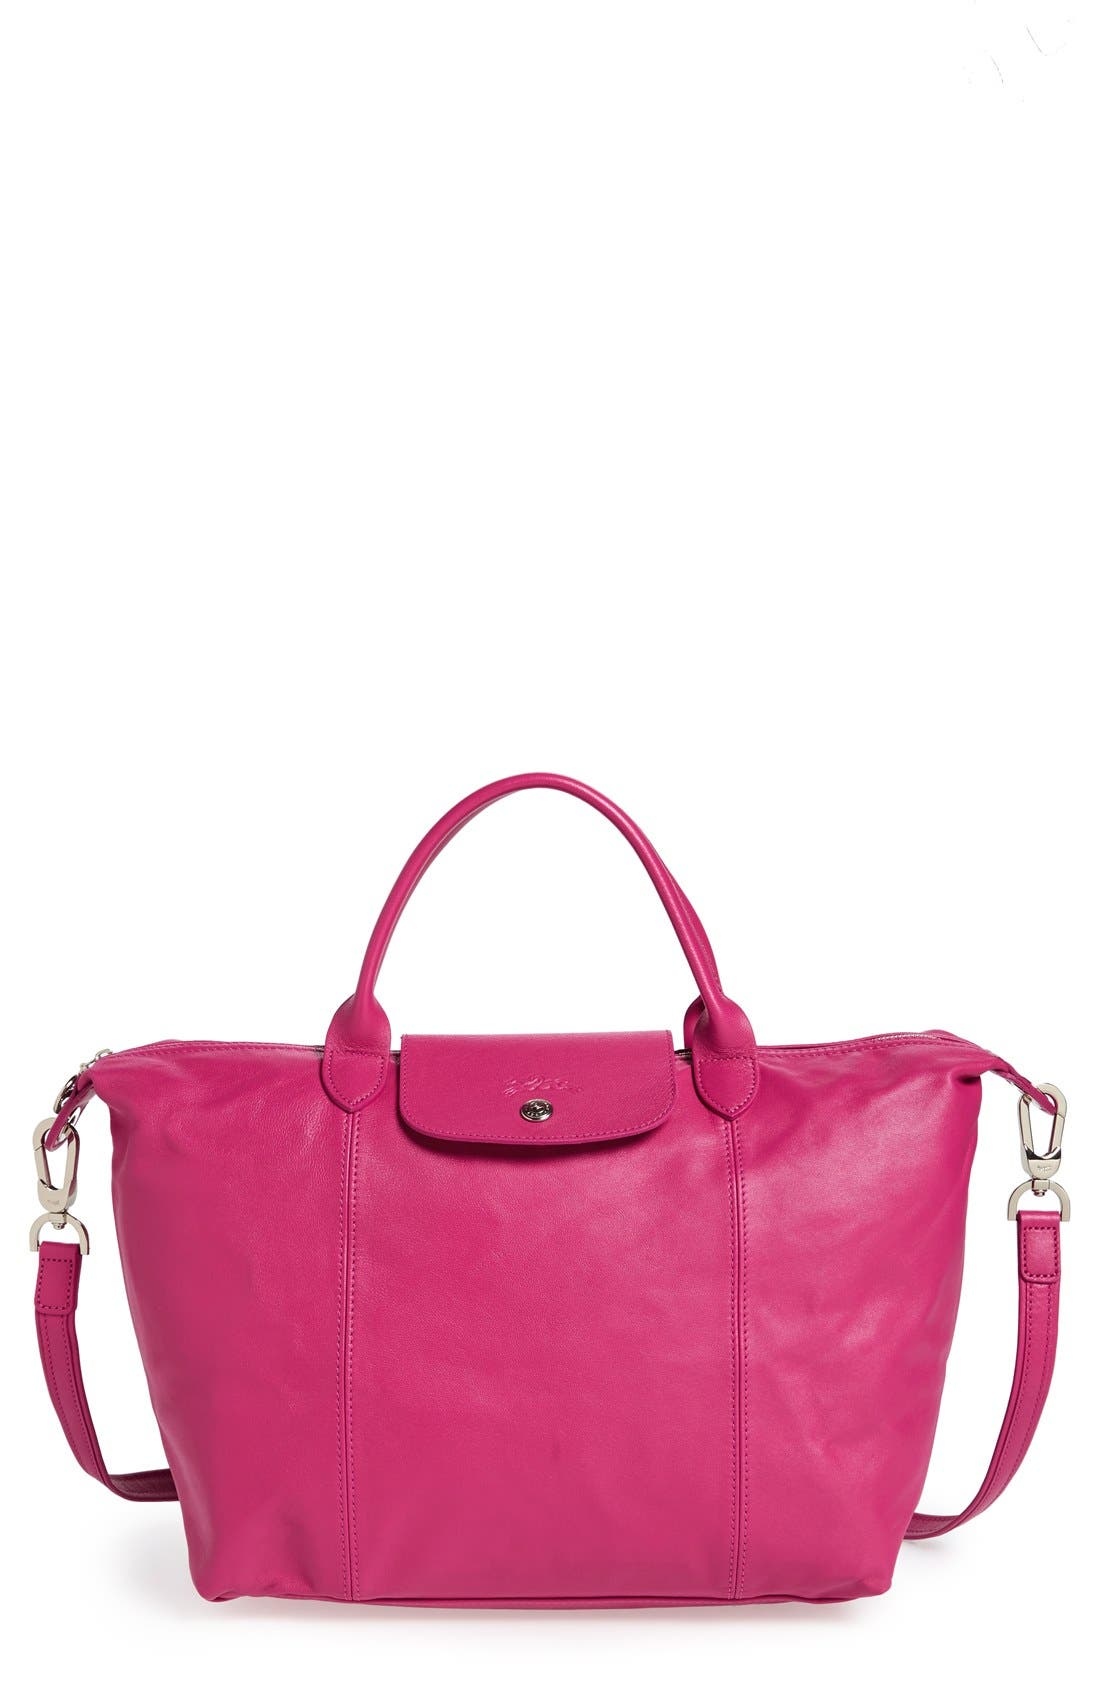 Alternate Image 1 Selected - Longchamp 'Le Pliage Cuir' Leather Handbag